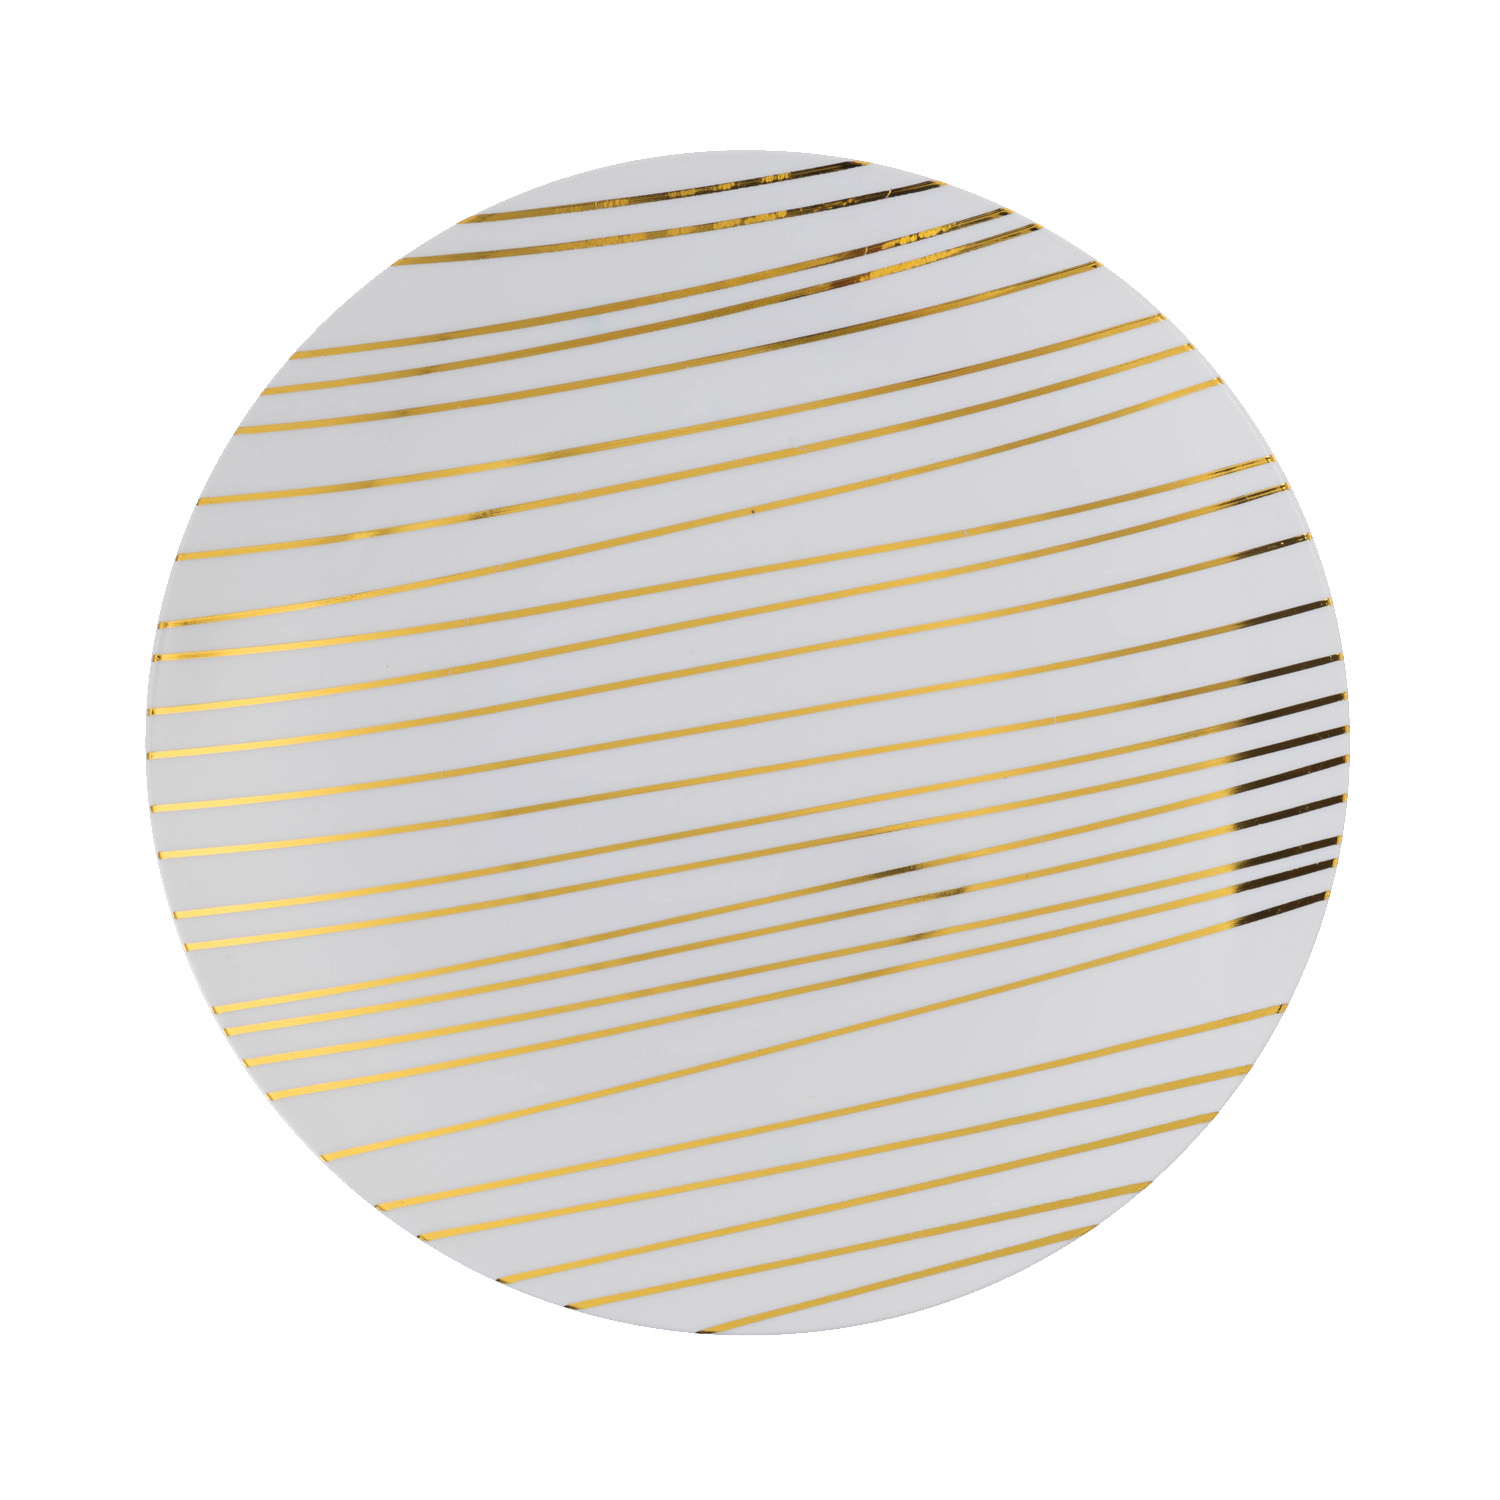 8 In. Glam Design Plastic Plates - 10 Ct.  sc 1 st  Factory Direct Party & Elegant Disposable Dinnerware - Fancy Disposable Plates u0026 Bowls